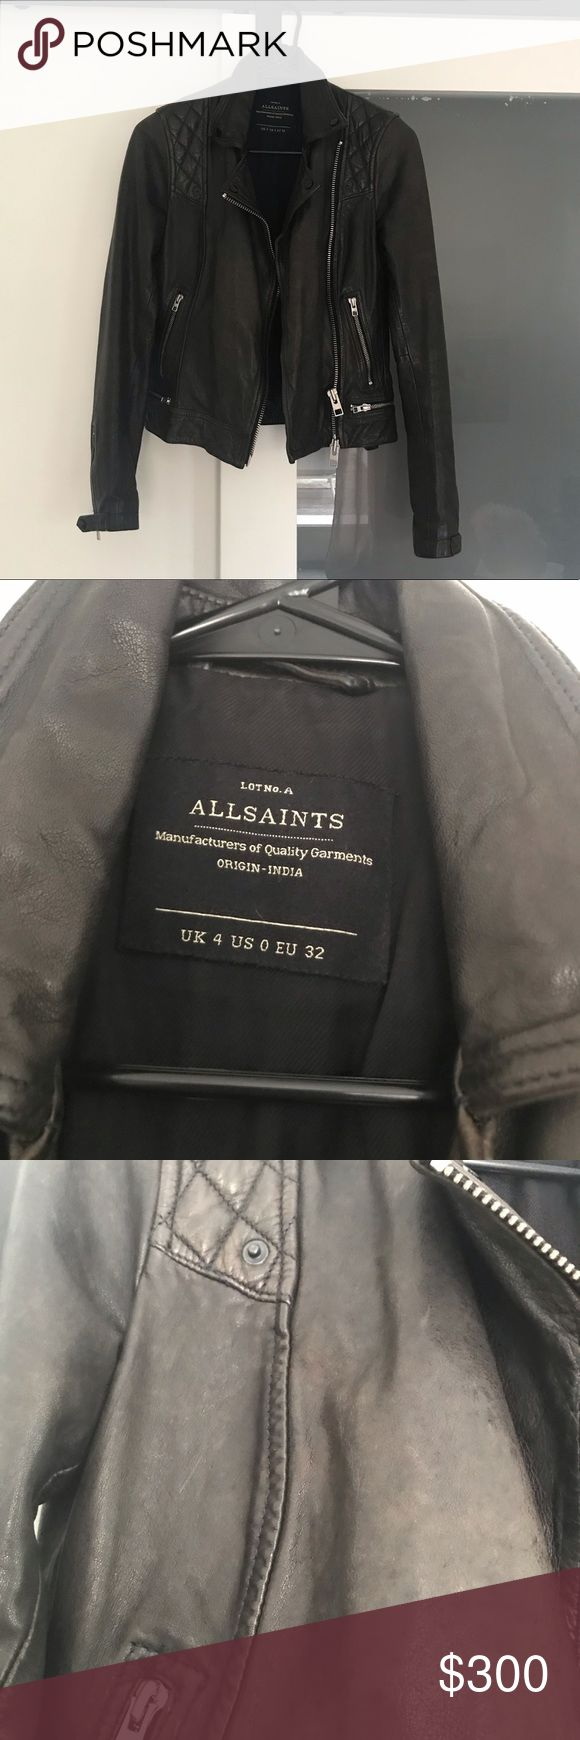 All Saints Leder Motorradjacke All Saints Leder Motorradjacke. In perfekter …   – My Posh Picks